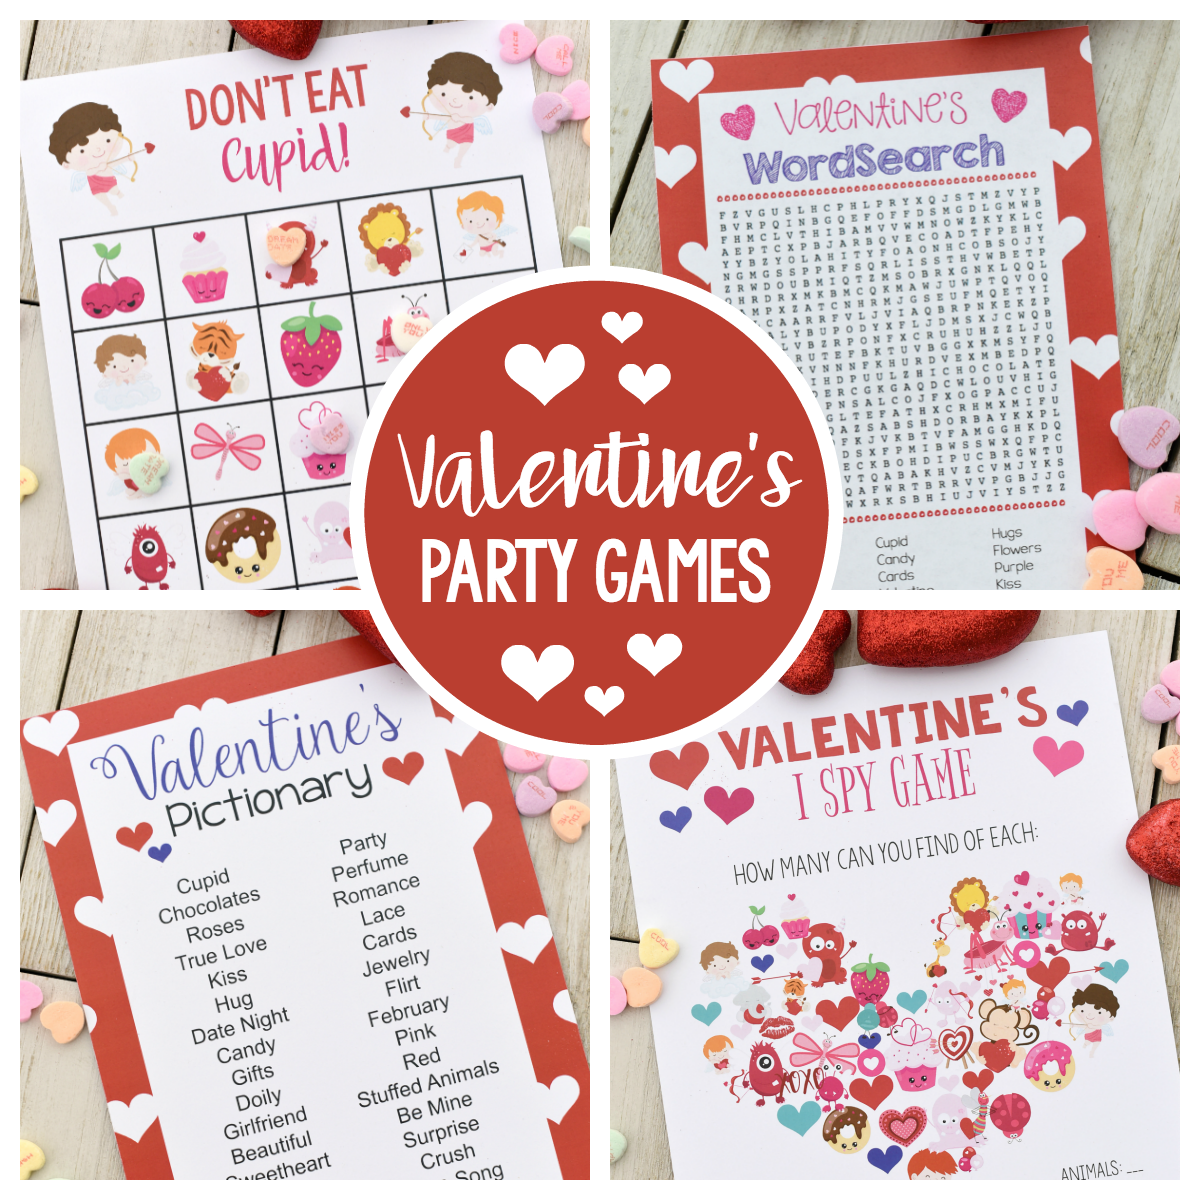 Fun Valentine Games To Print & Play